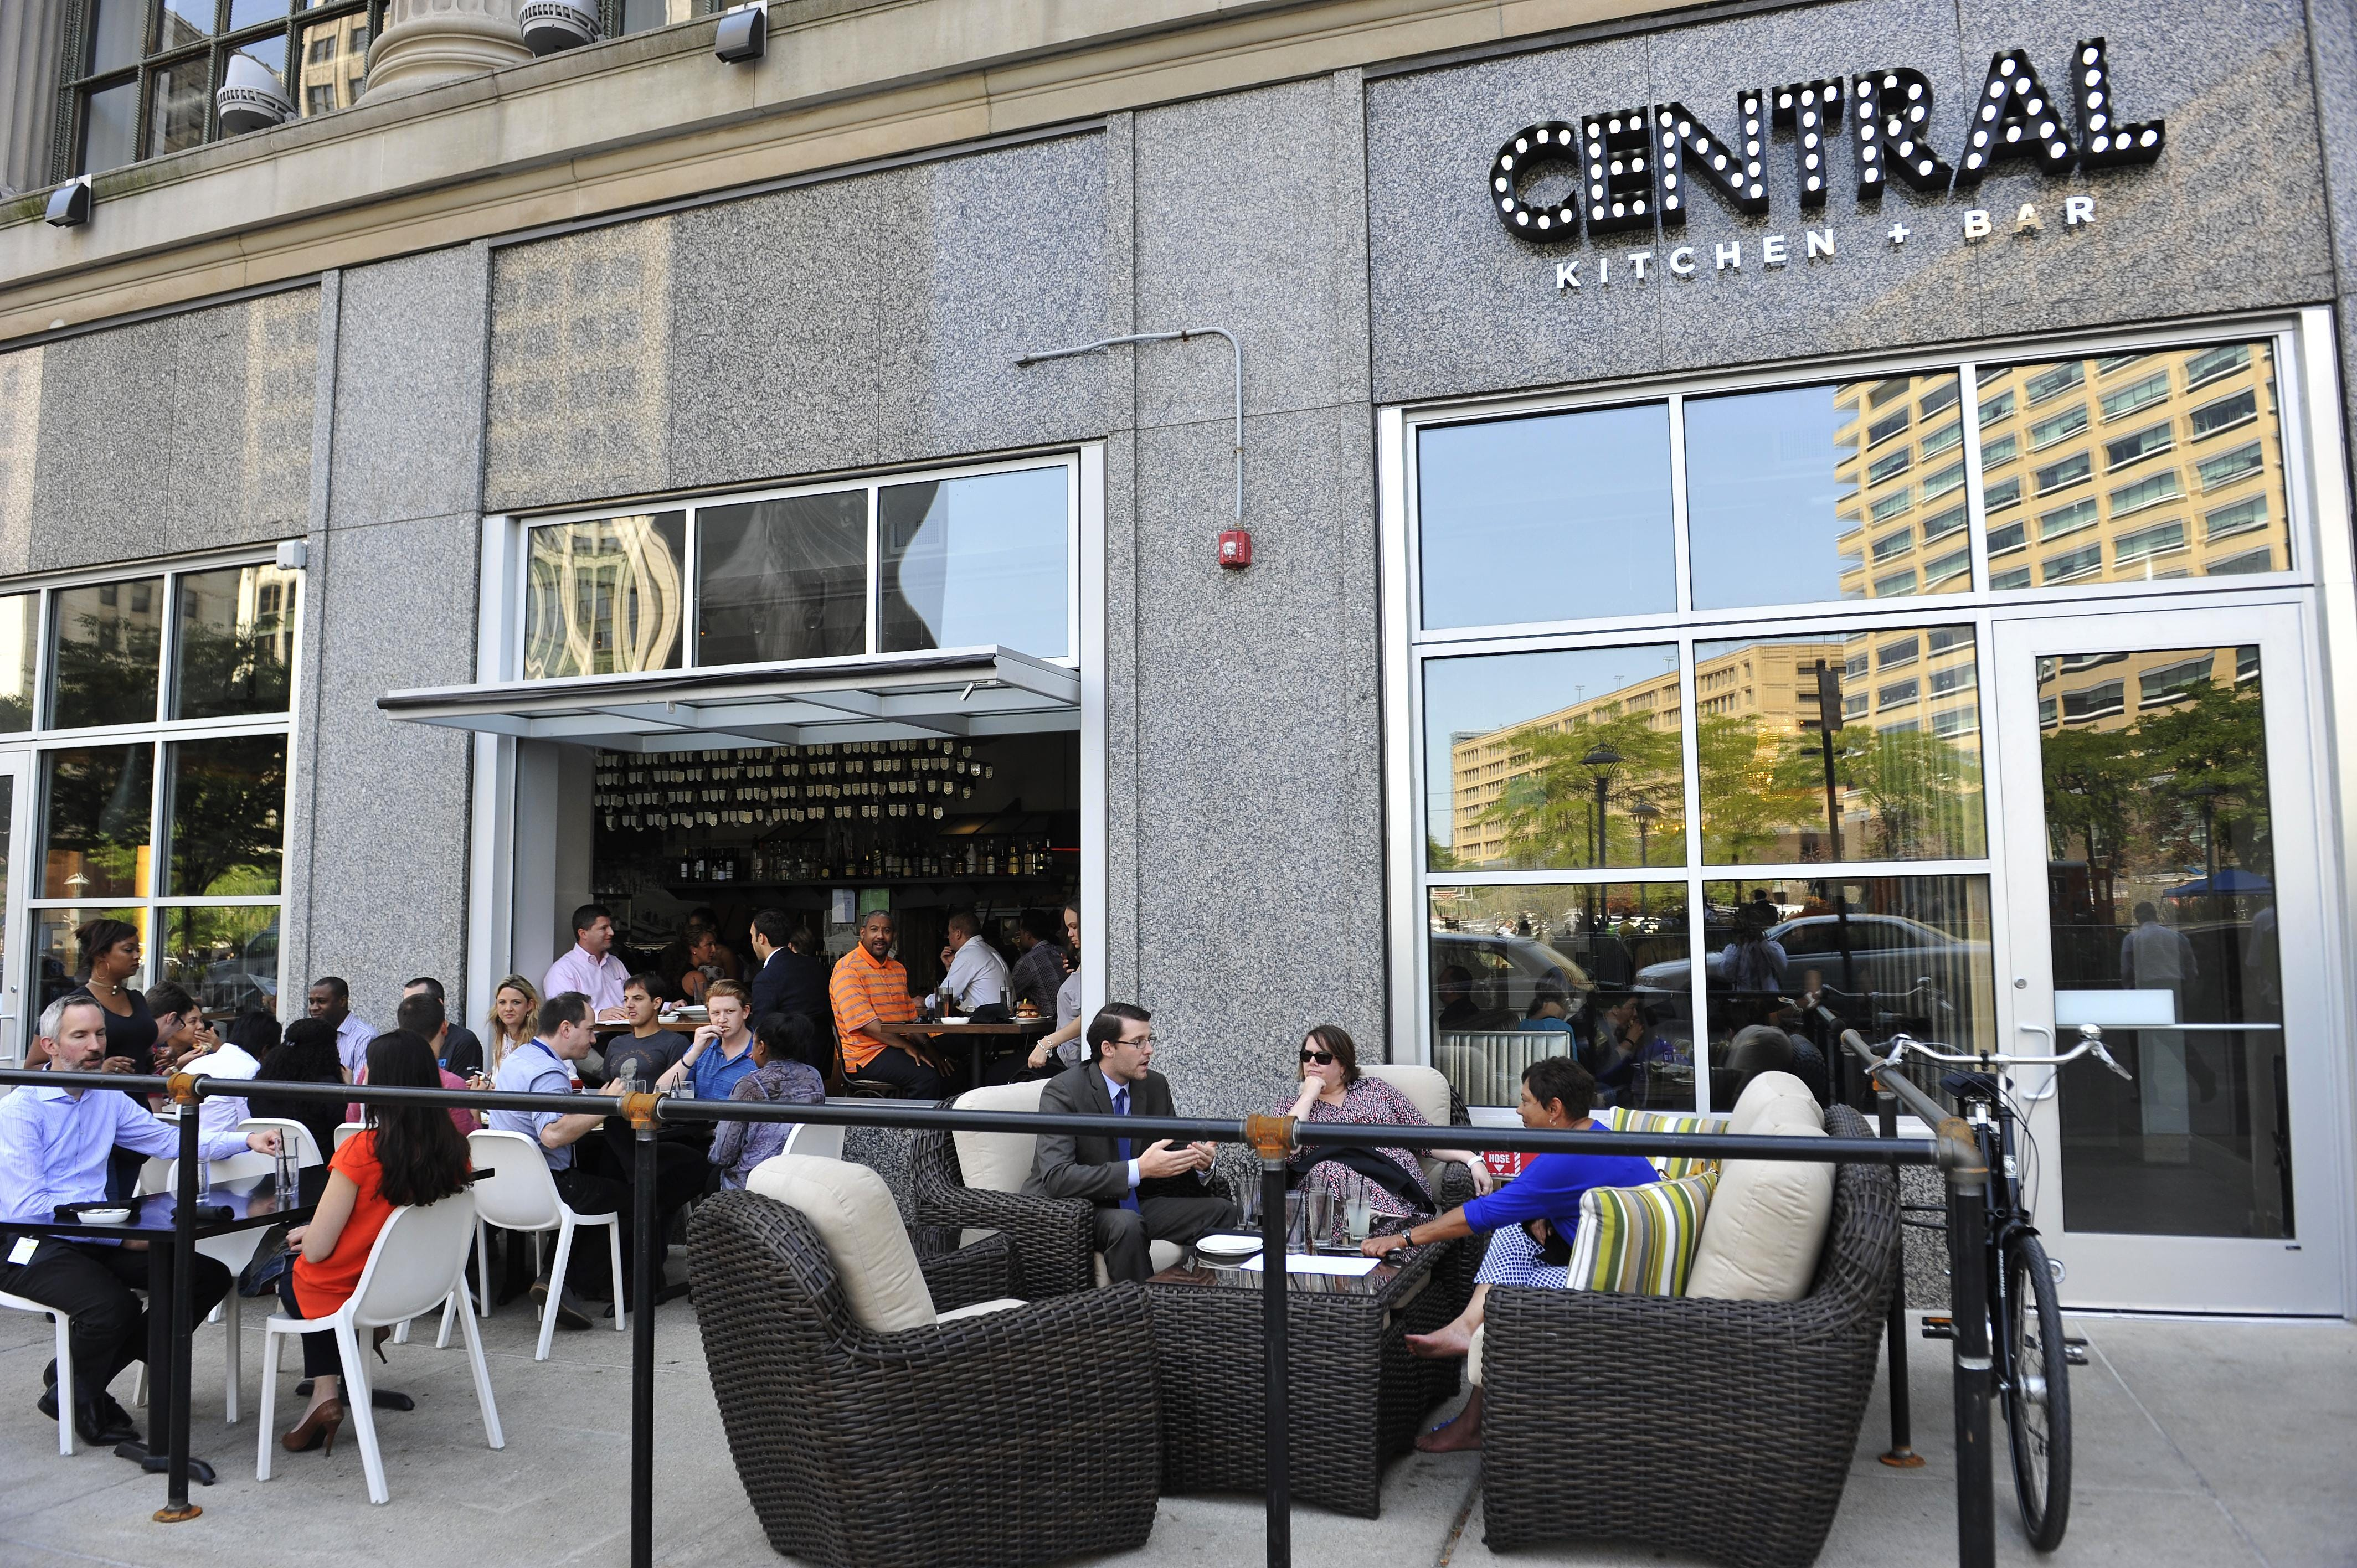 New Central Kitchen U0026 Bar Adds To Downtown Dining Scene